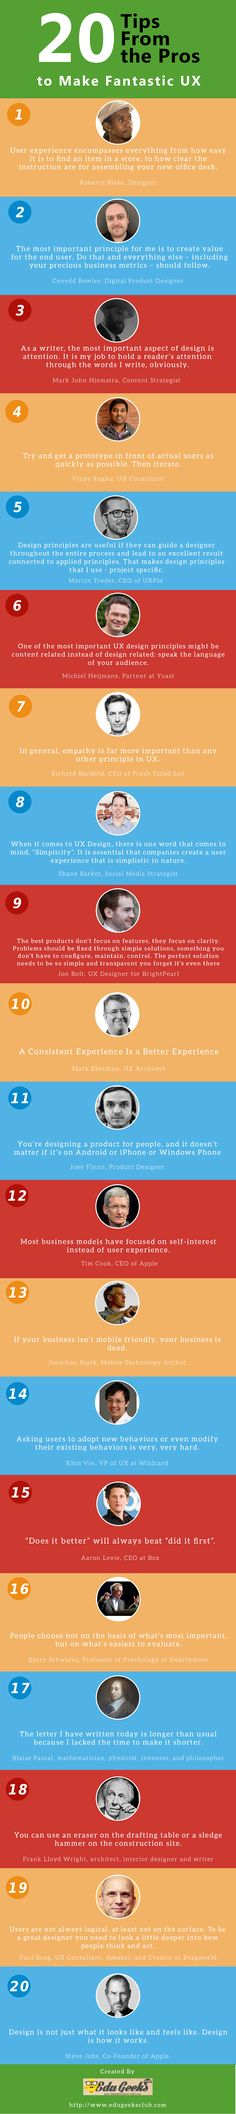 20 Tips from the Pros to Make Fantastic User Experience [Infographic]